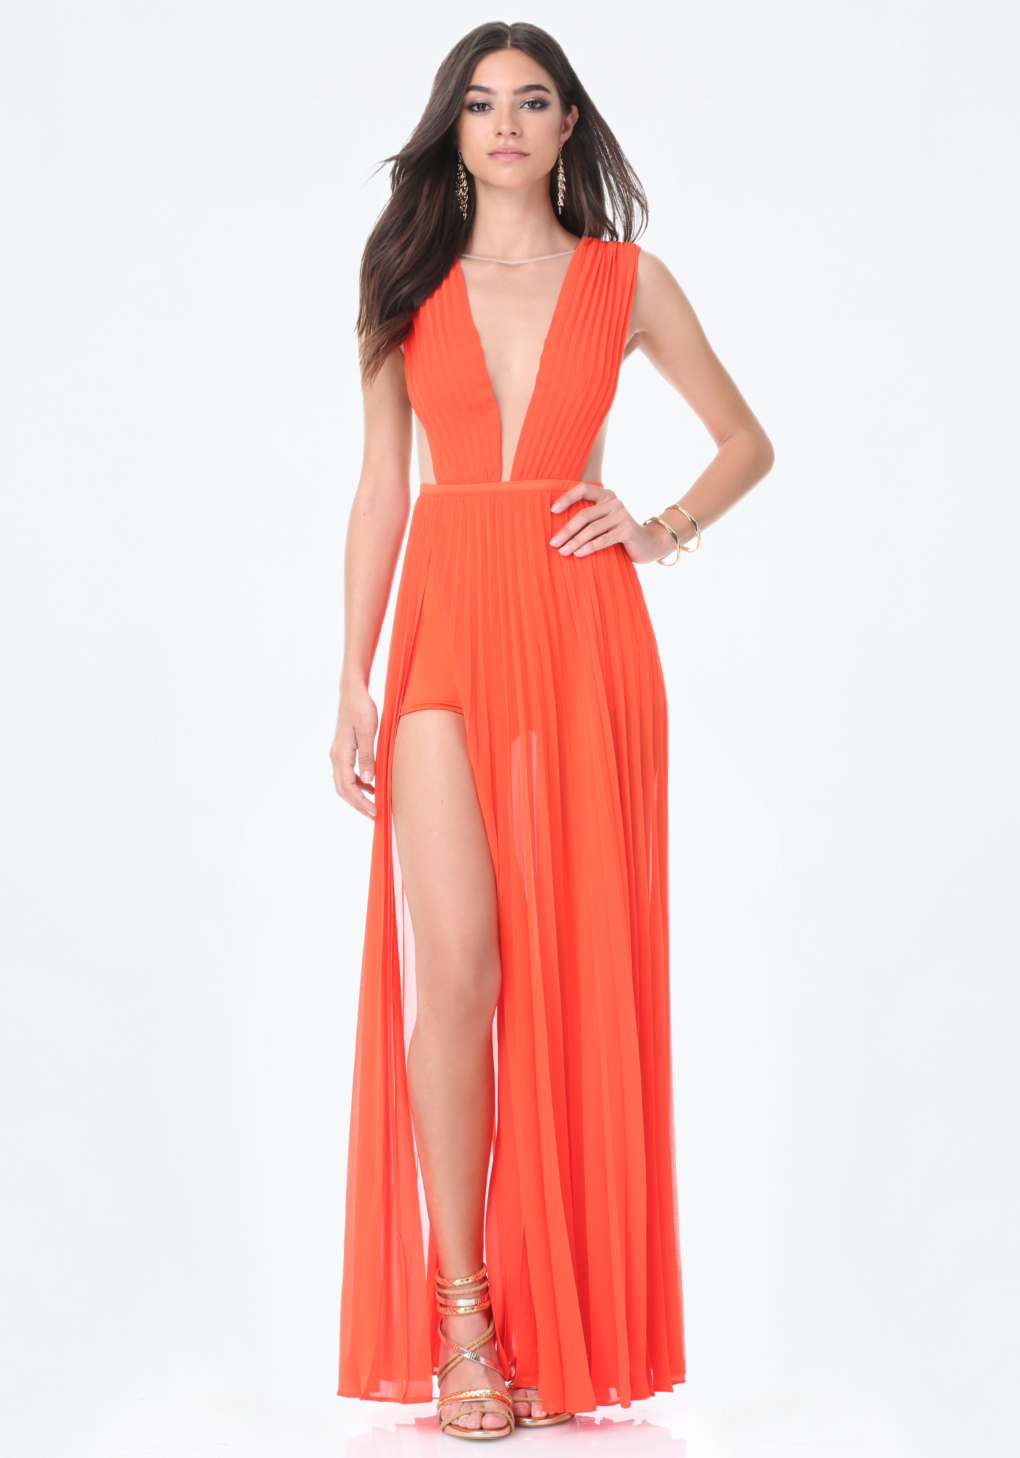 Lyst - Bebe Solid Double Slit Gown